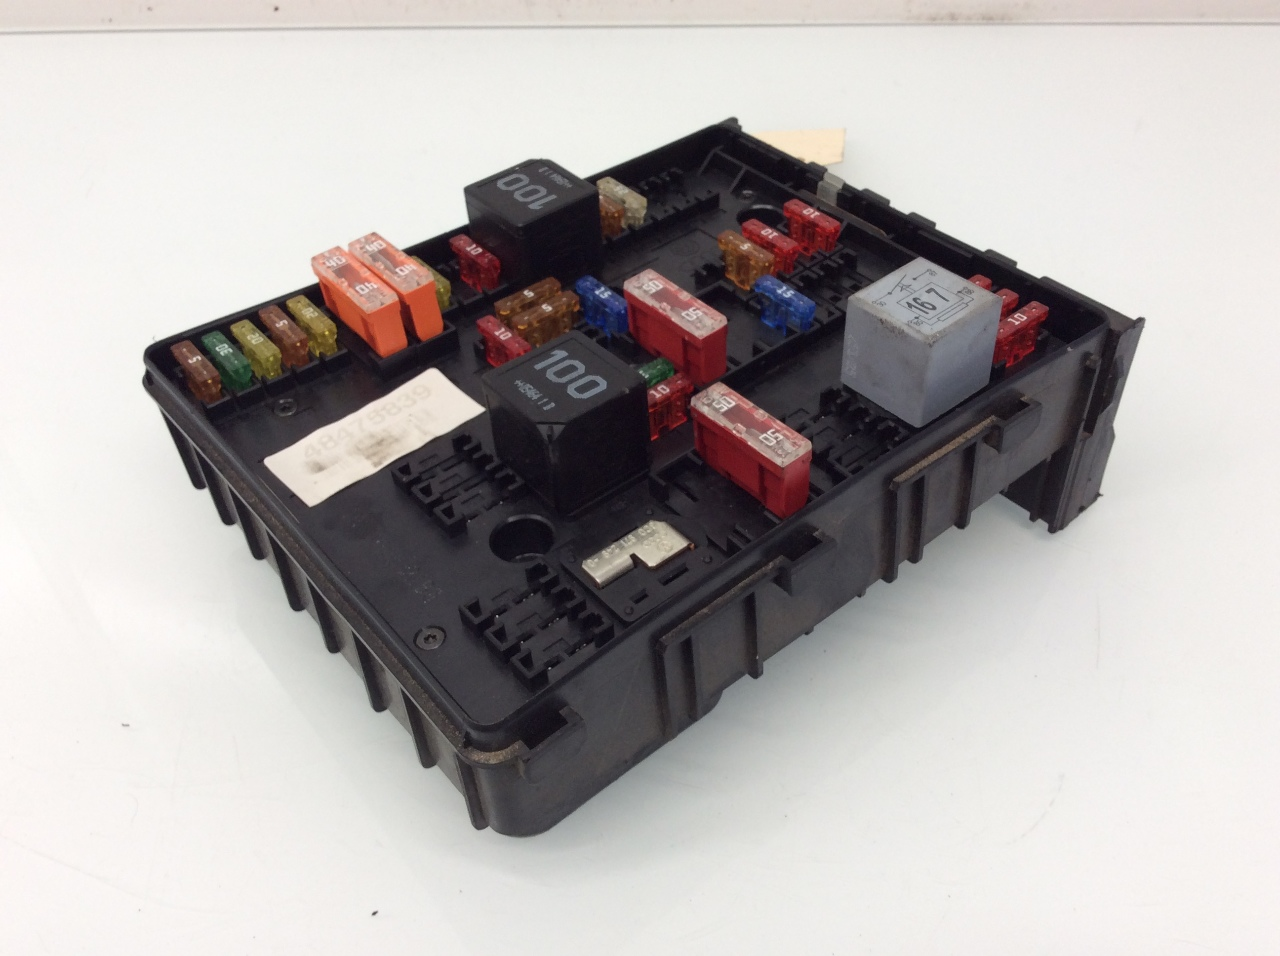 R32 Fuse Box Auto Electrical Wiring Diagram Vw 2008 Blower Motor